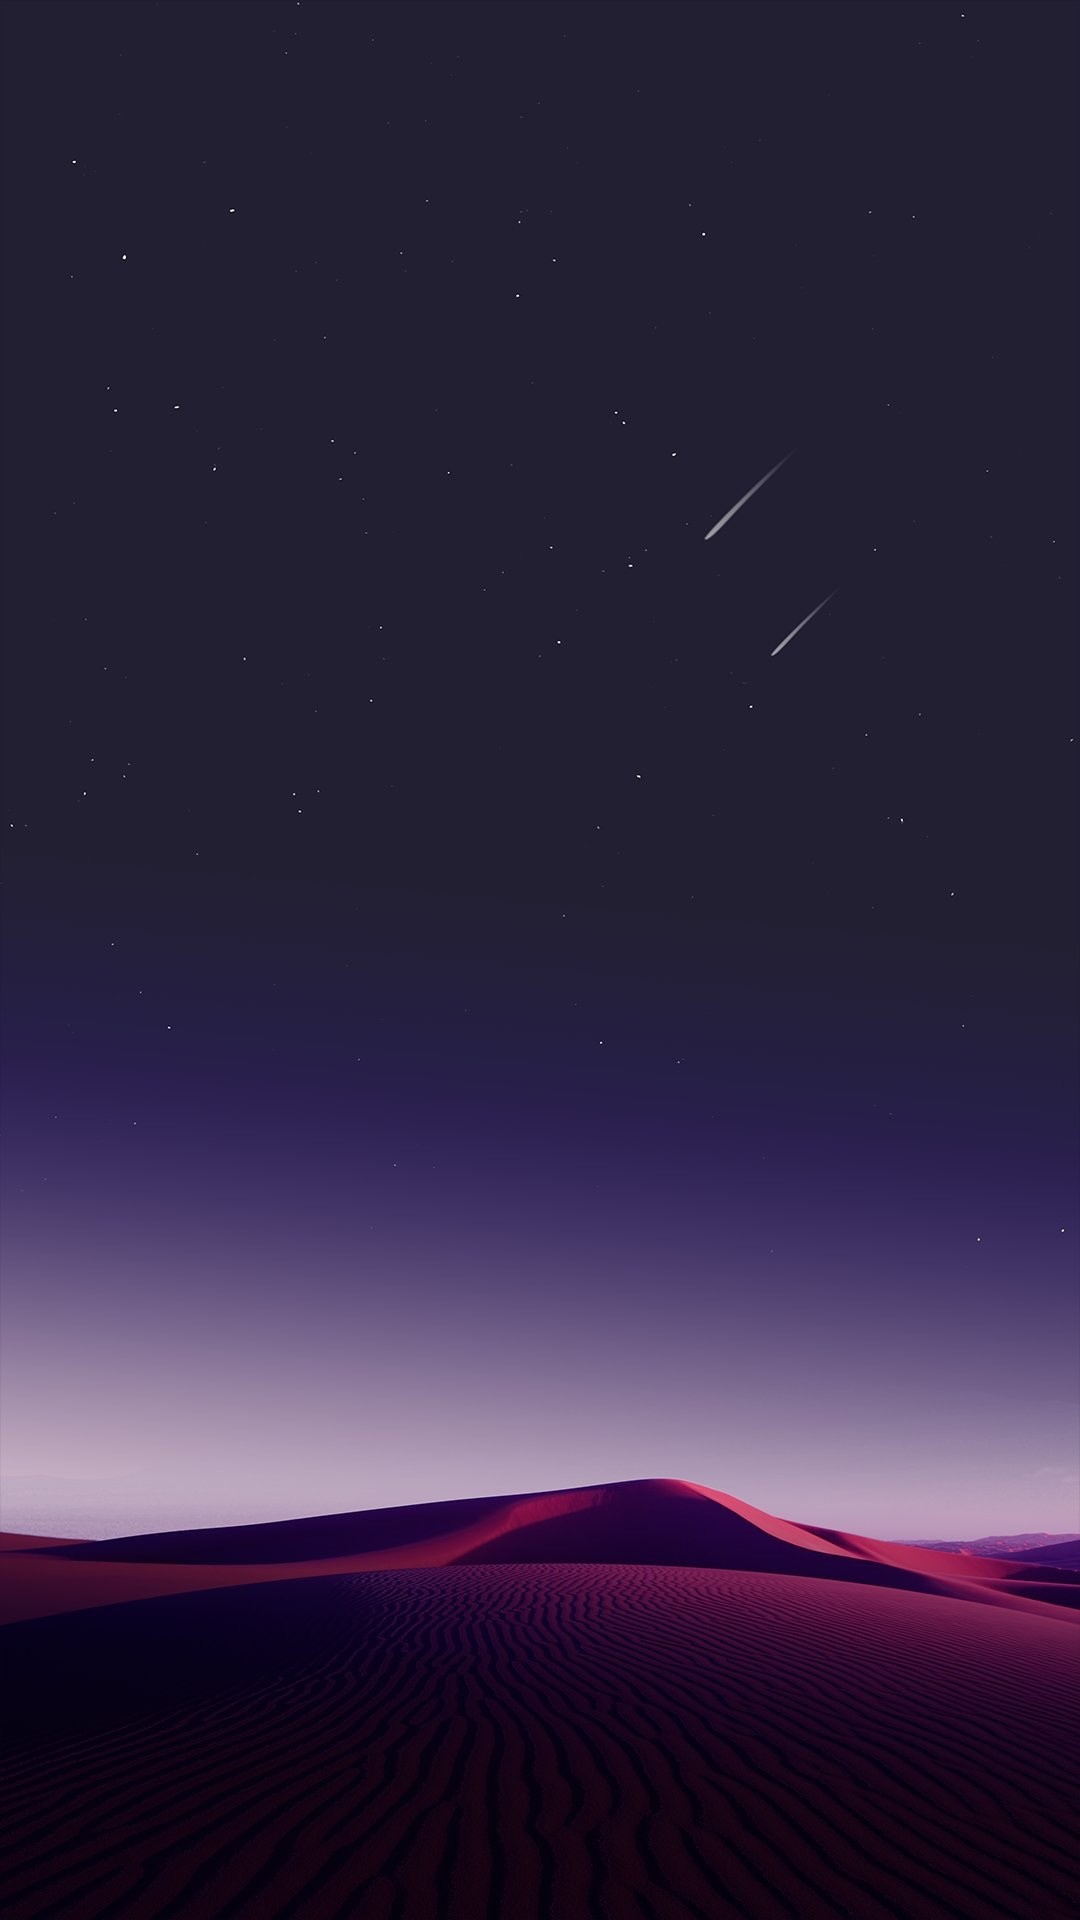 Res: 1080x1920, Download this wallpaper Preview